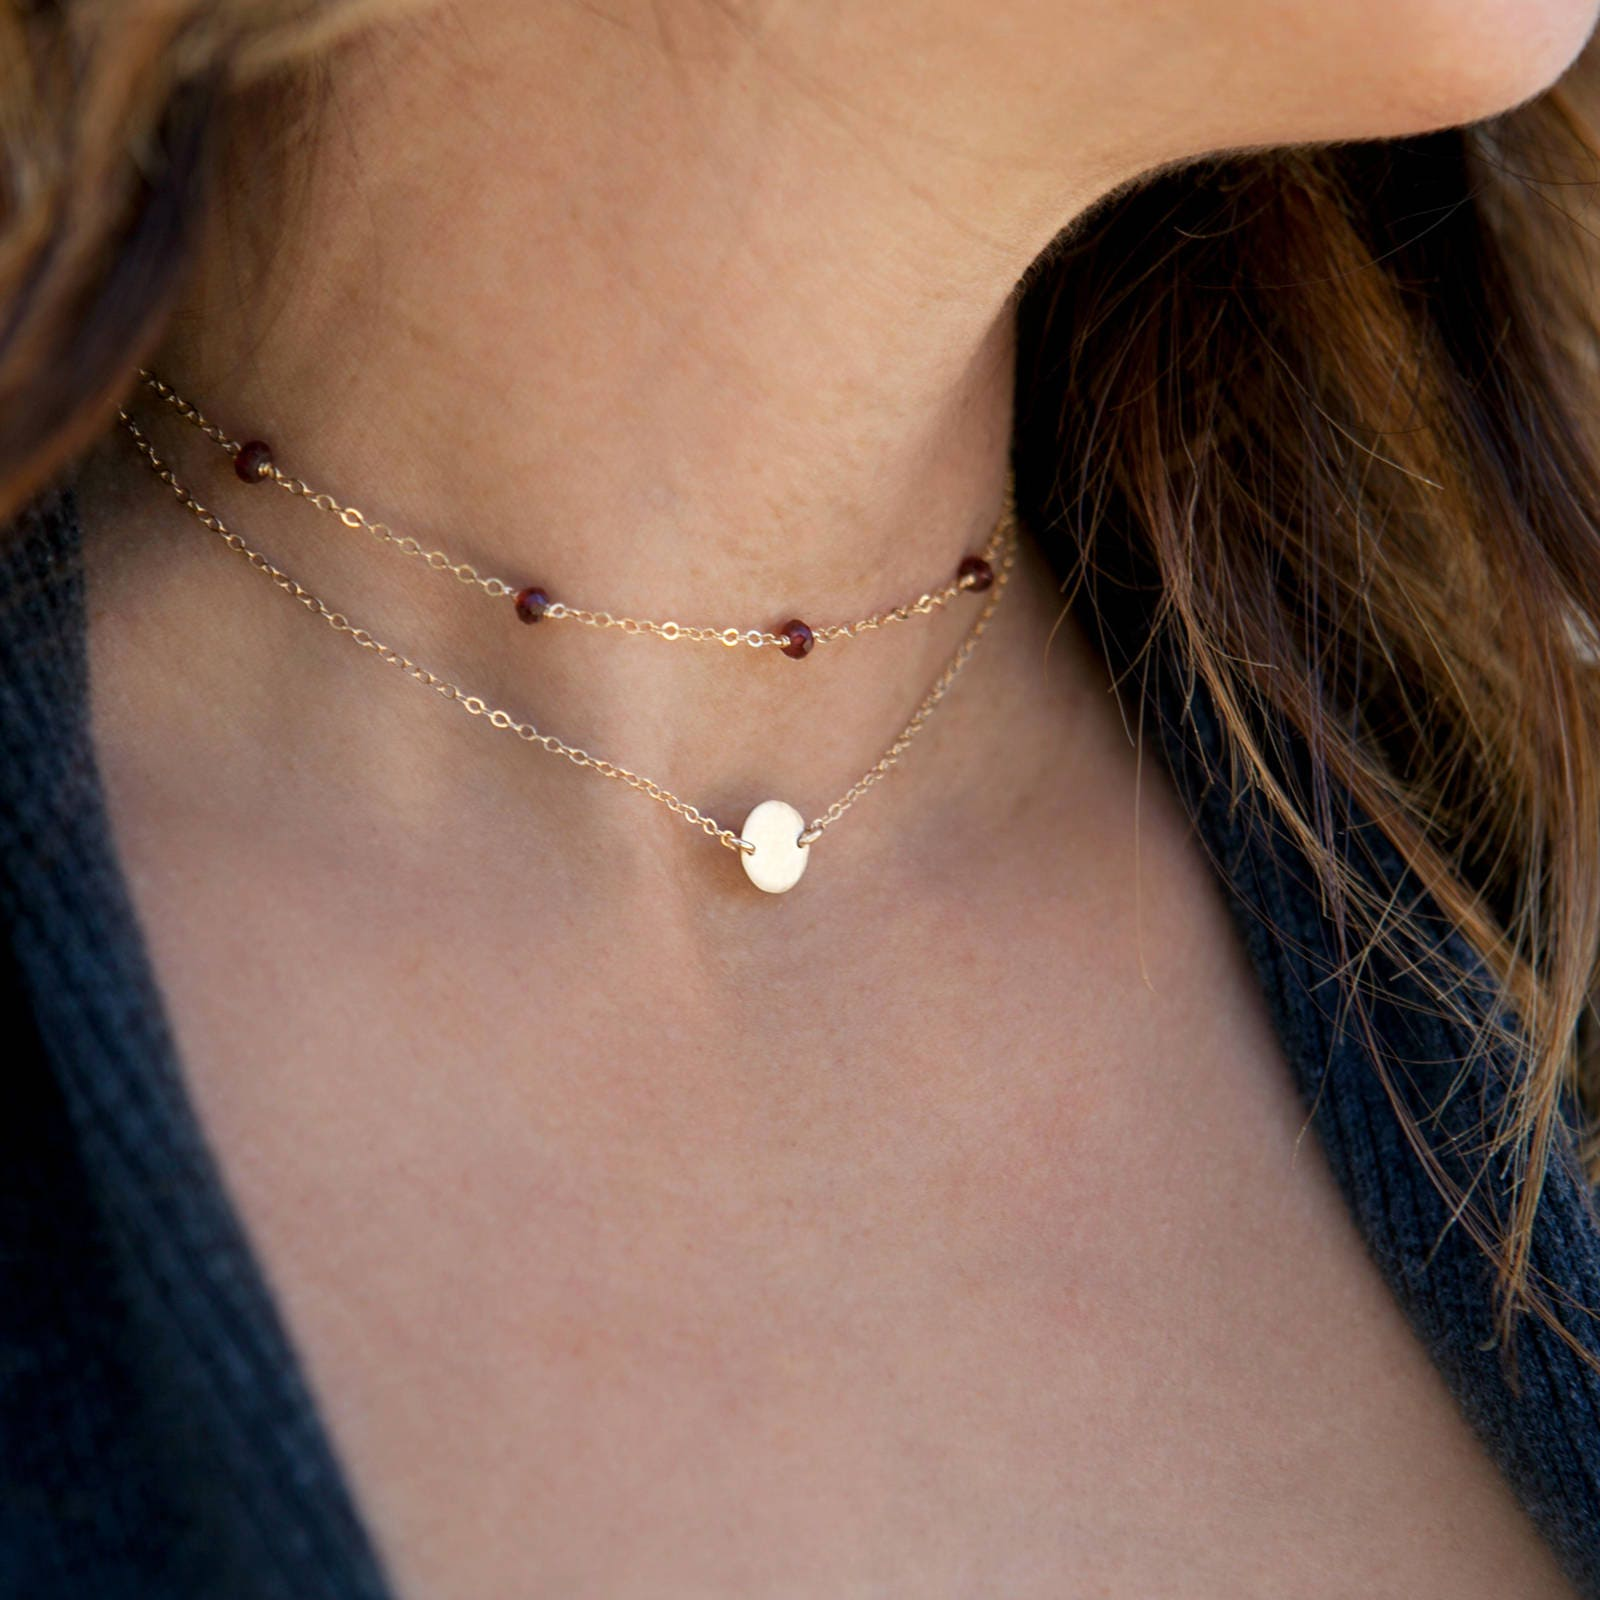 9d8f36f89e91e Birthstone Choker Necklace, Dainty Gold Necklace, 14k Gold Fill, Sterling  Silver, Simple Choker Necklace, LEILAjewelryshop, N242